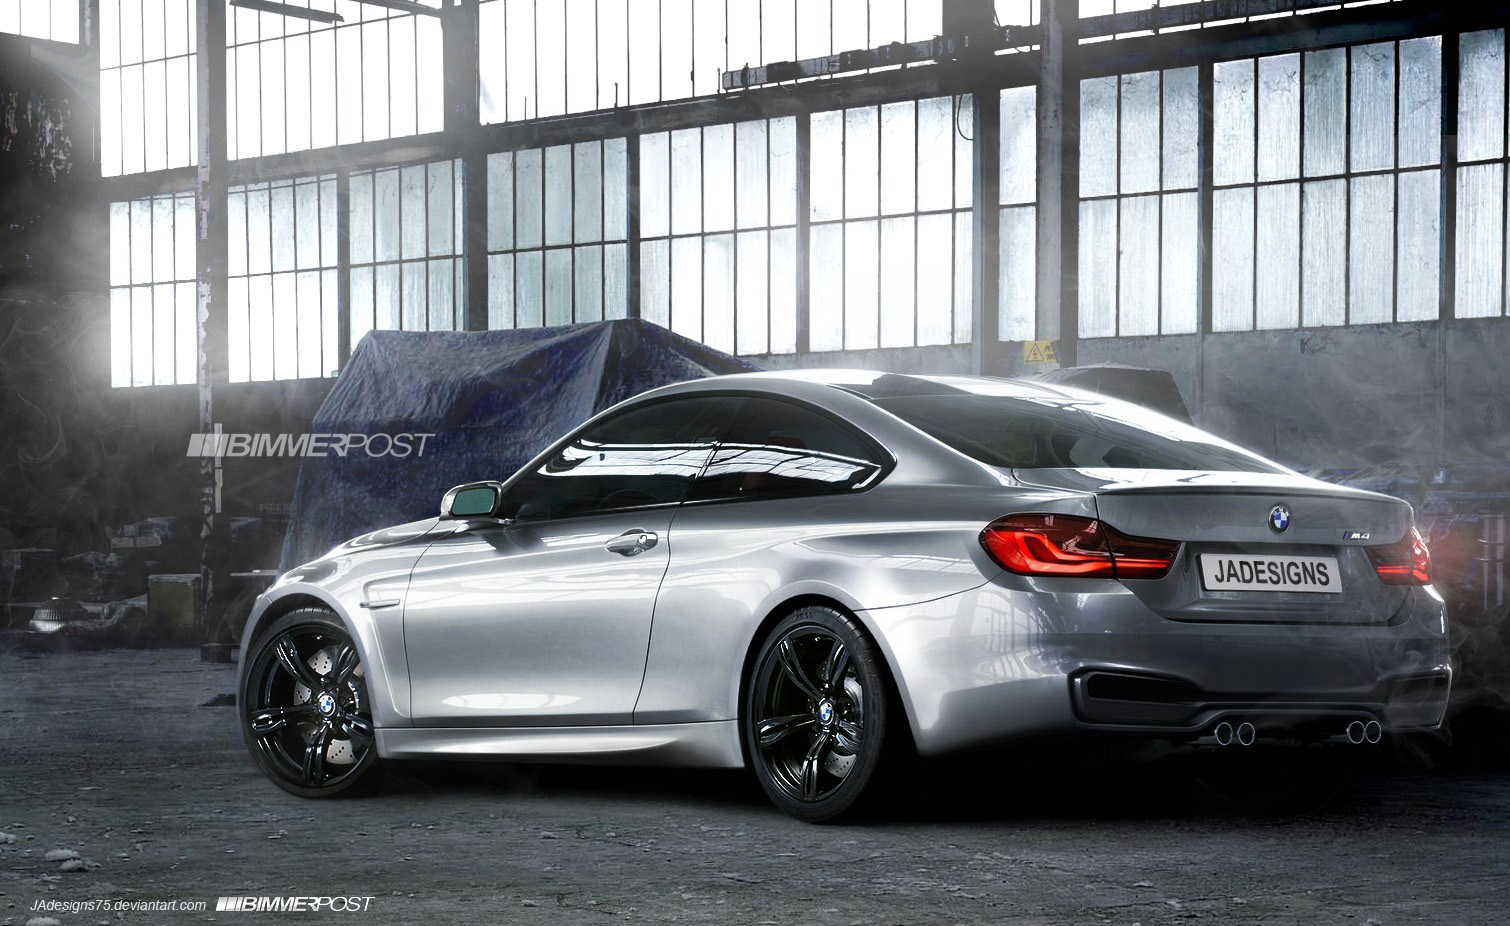 Name bimmerpost f82 m4 coupe 2 jpg views 43396